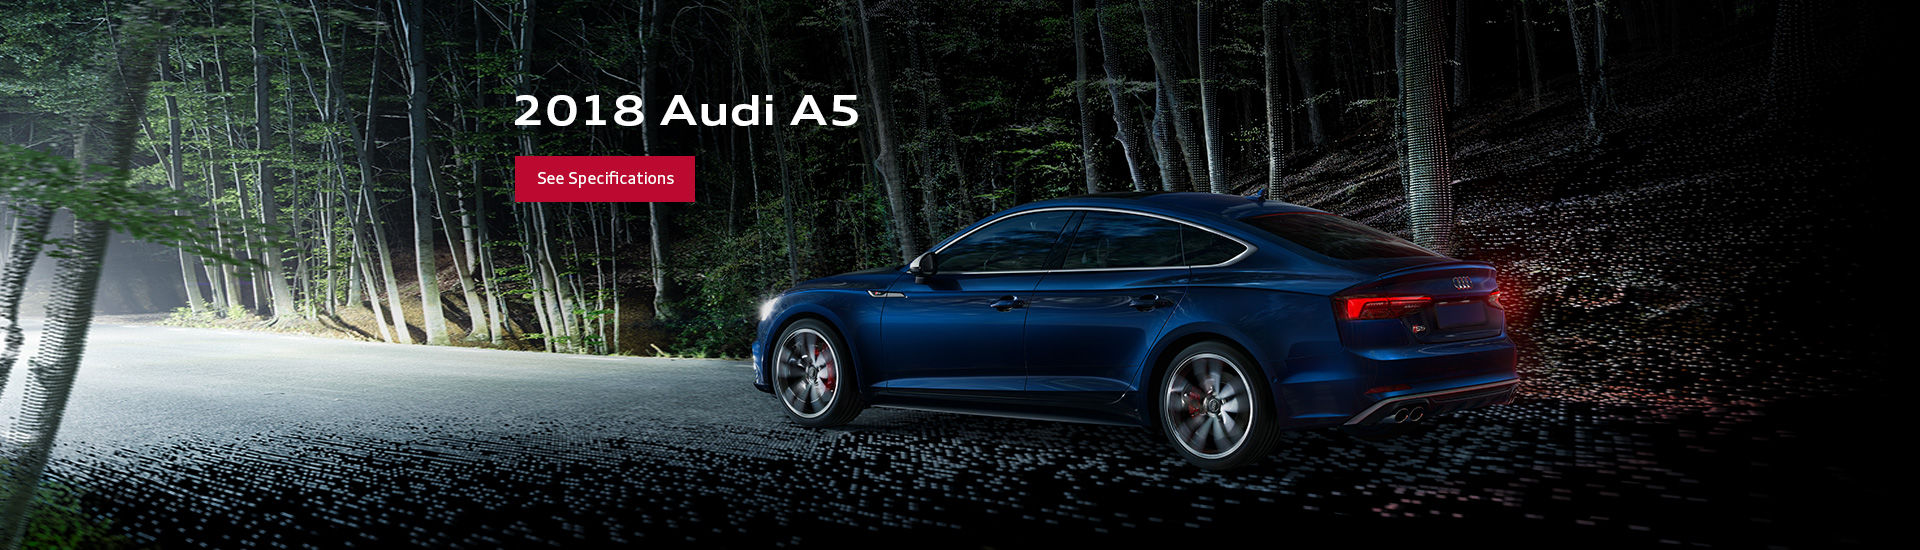 Bill Matthews Audi Audi Dealer In St Johns - Audi car loan interest rate